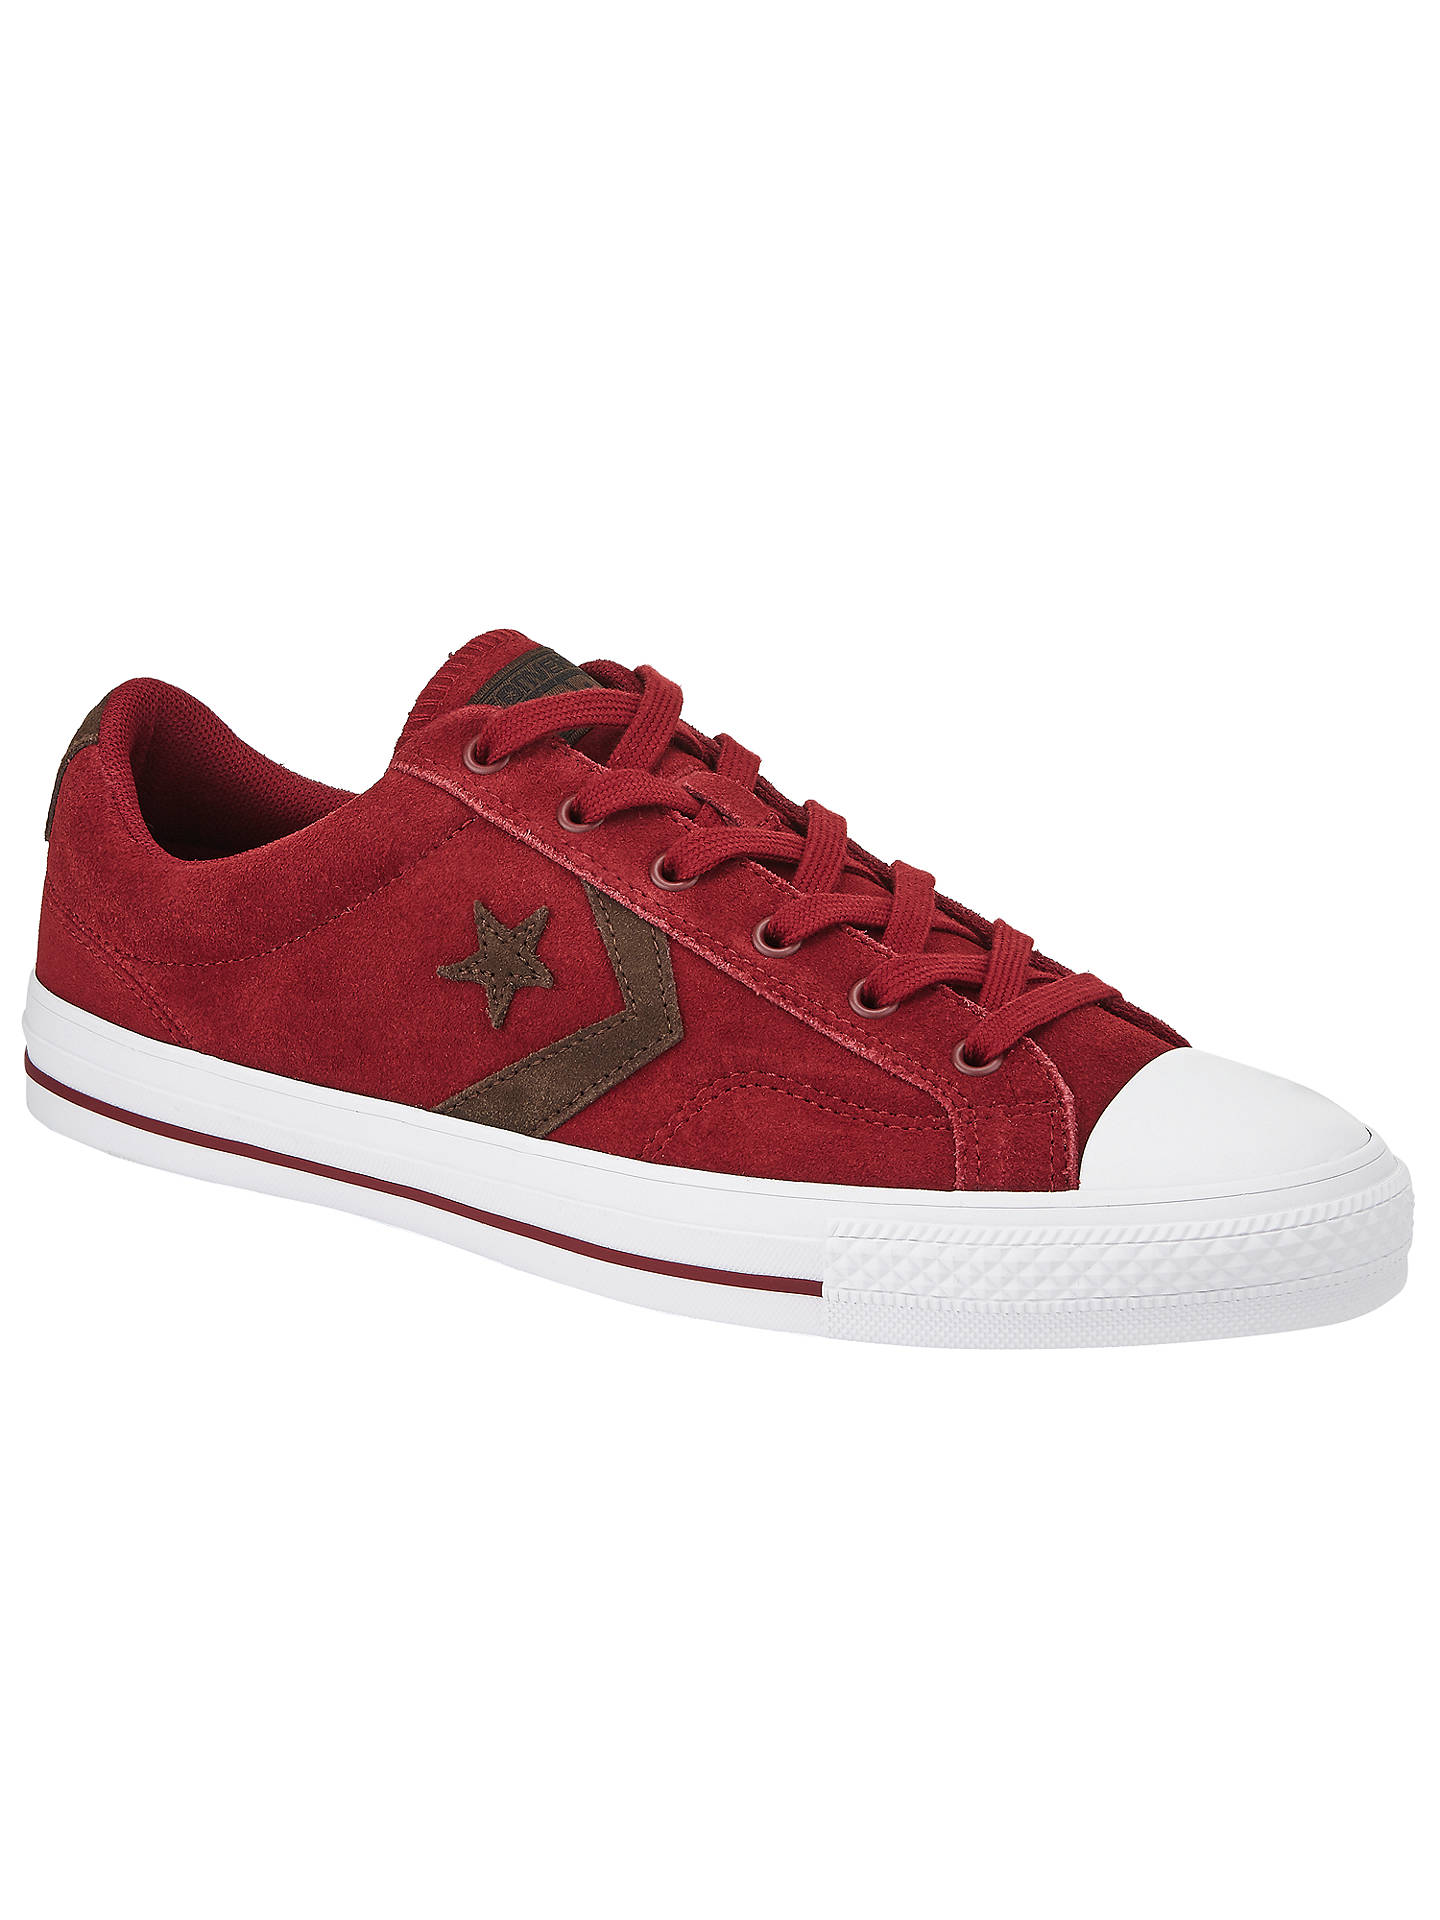 c8991c284e6 Converse Star Player Suede Trainers at John Lewis & Partners